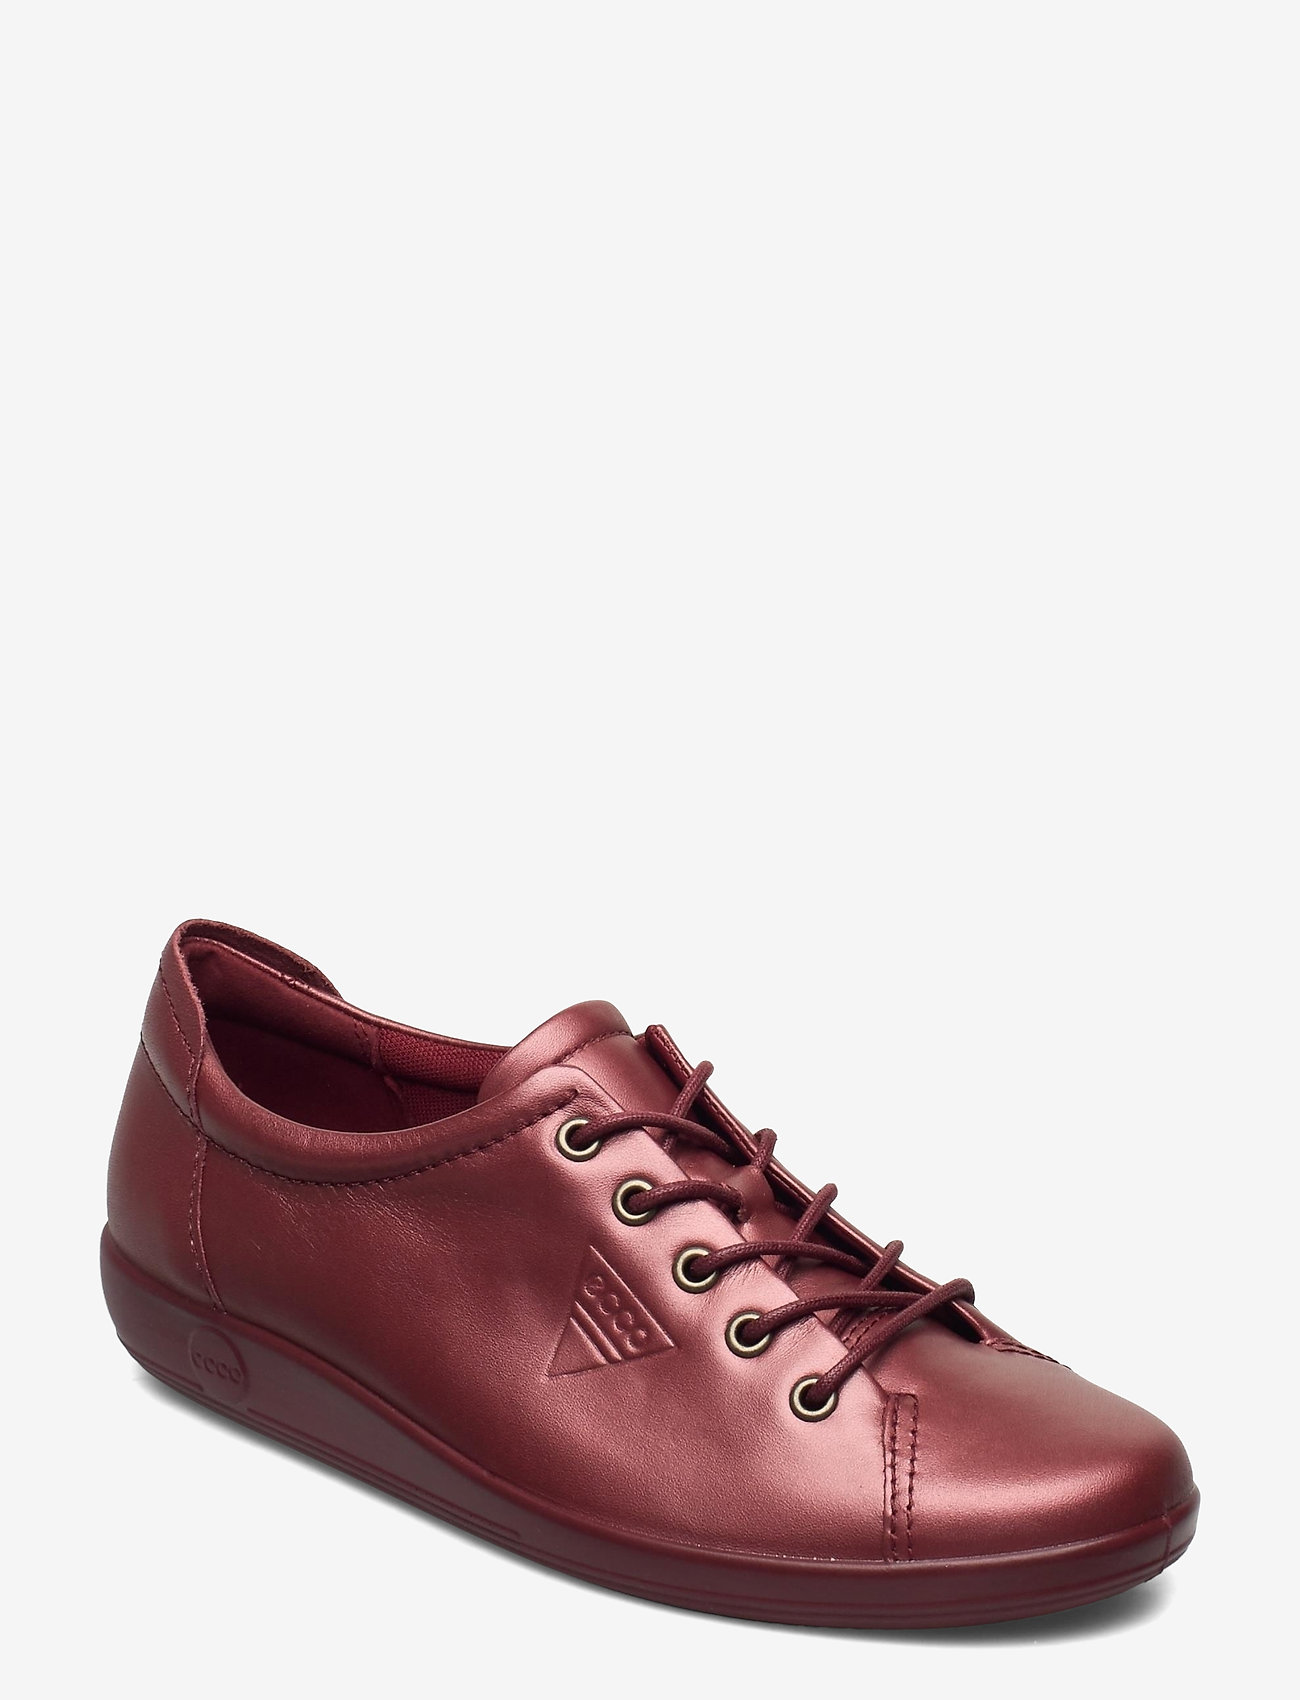 ECCO - SOFT 2.0 - låga sneakers - syrah metallic - 0